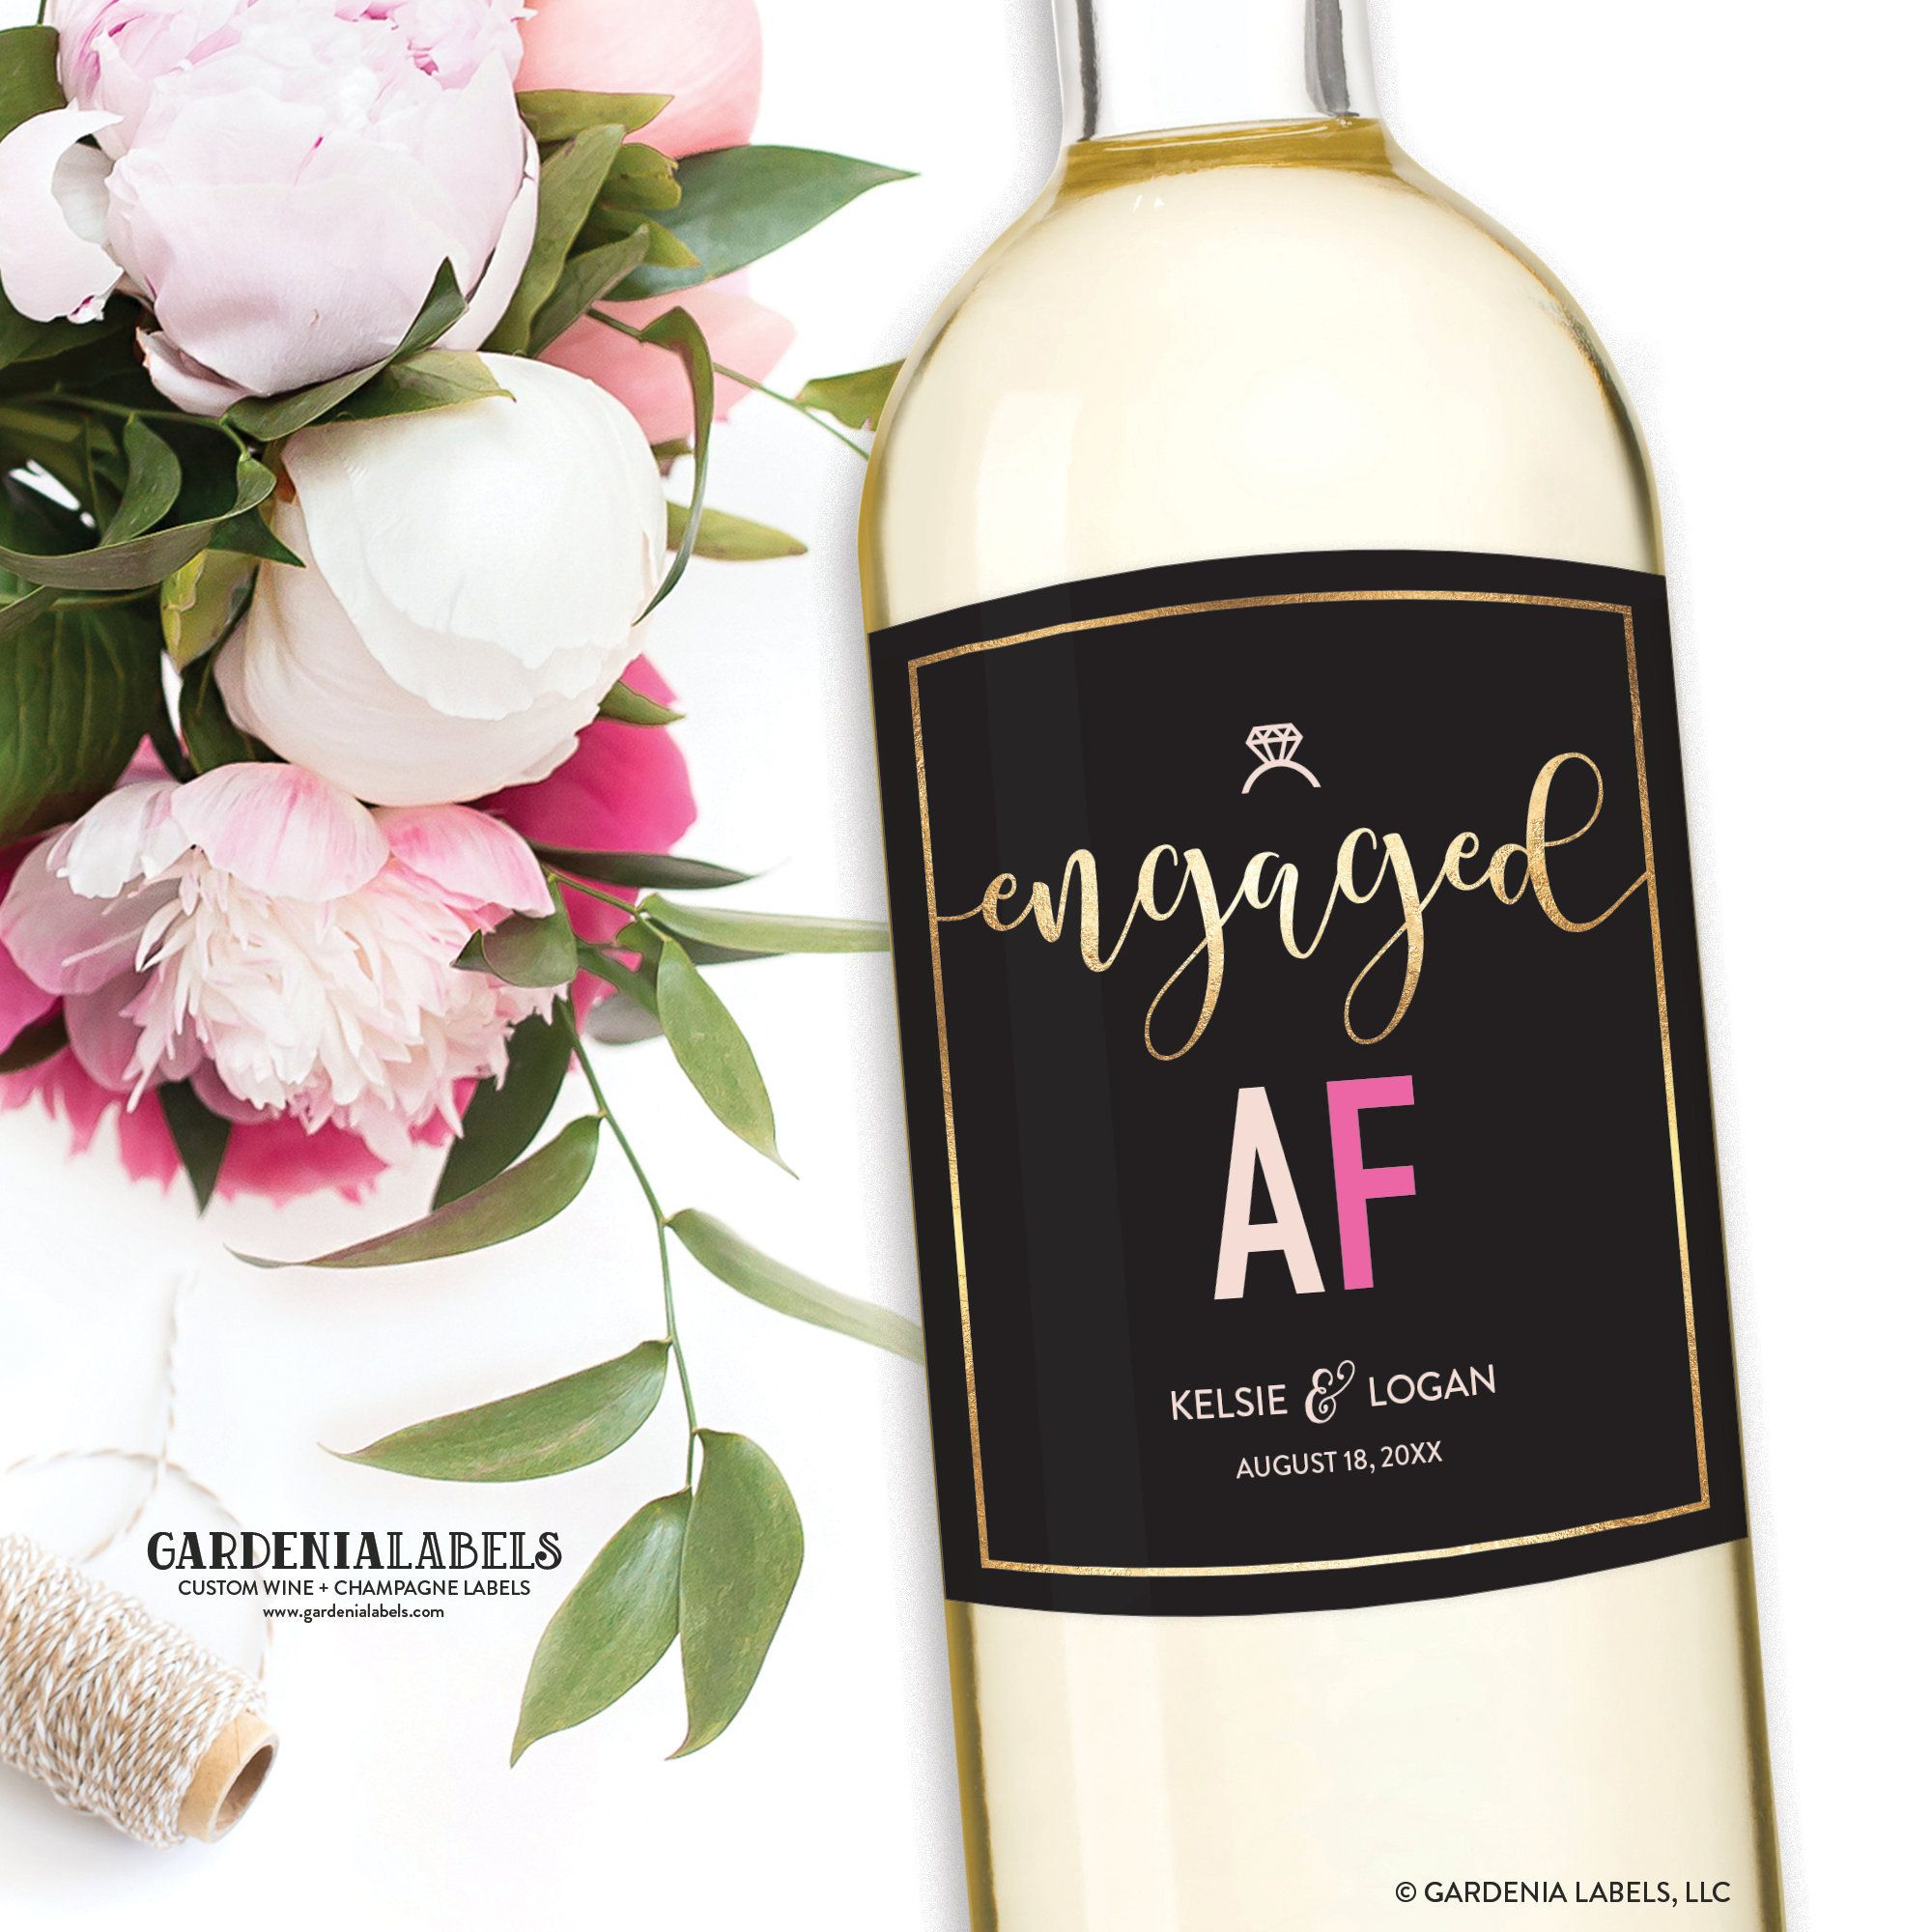 Engaged af wine label bride to be gift engagement party